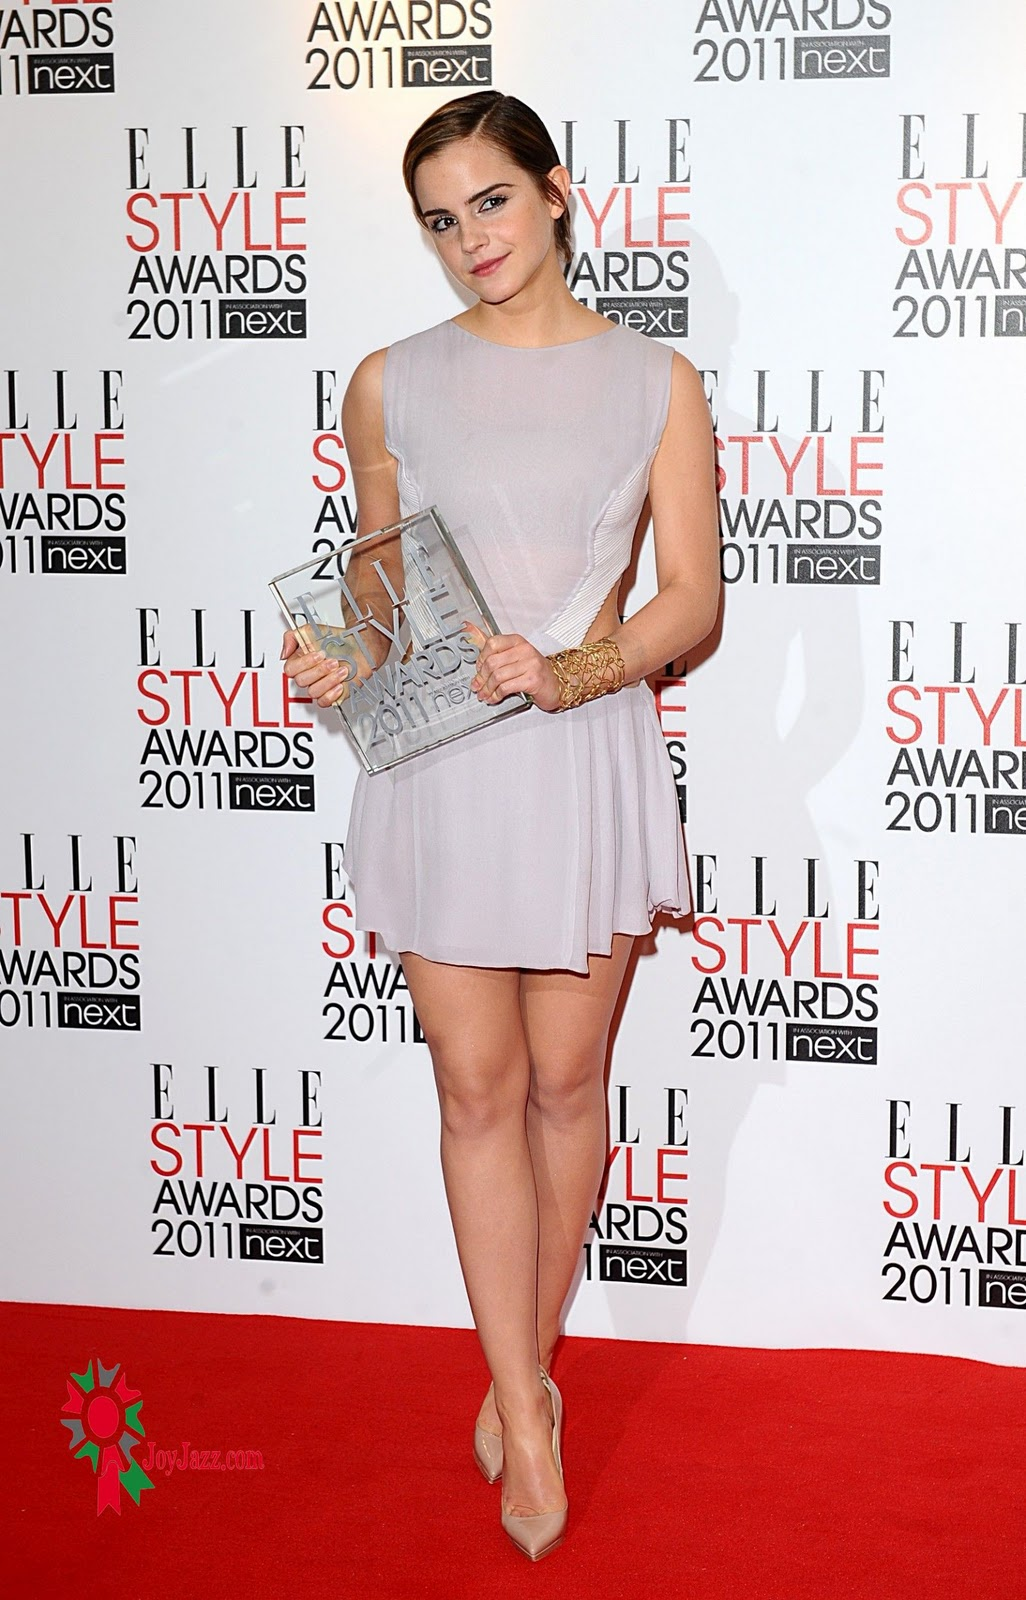 Hot and spicy: Emma Watson – ELLE Style Awards 2011 in London